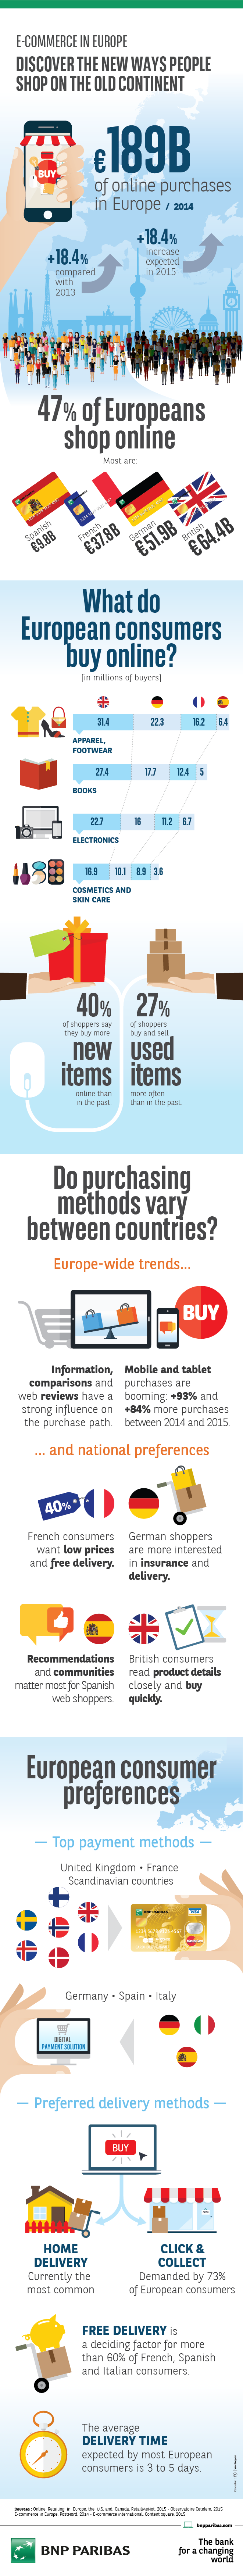 Infographic - E-commerce in Europe - Discover the new ways people shop on the old Continent